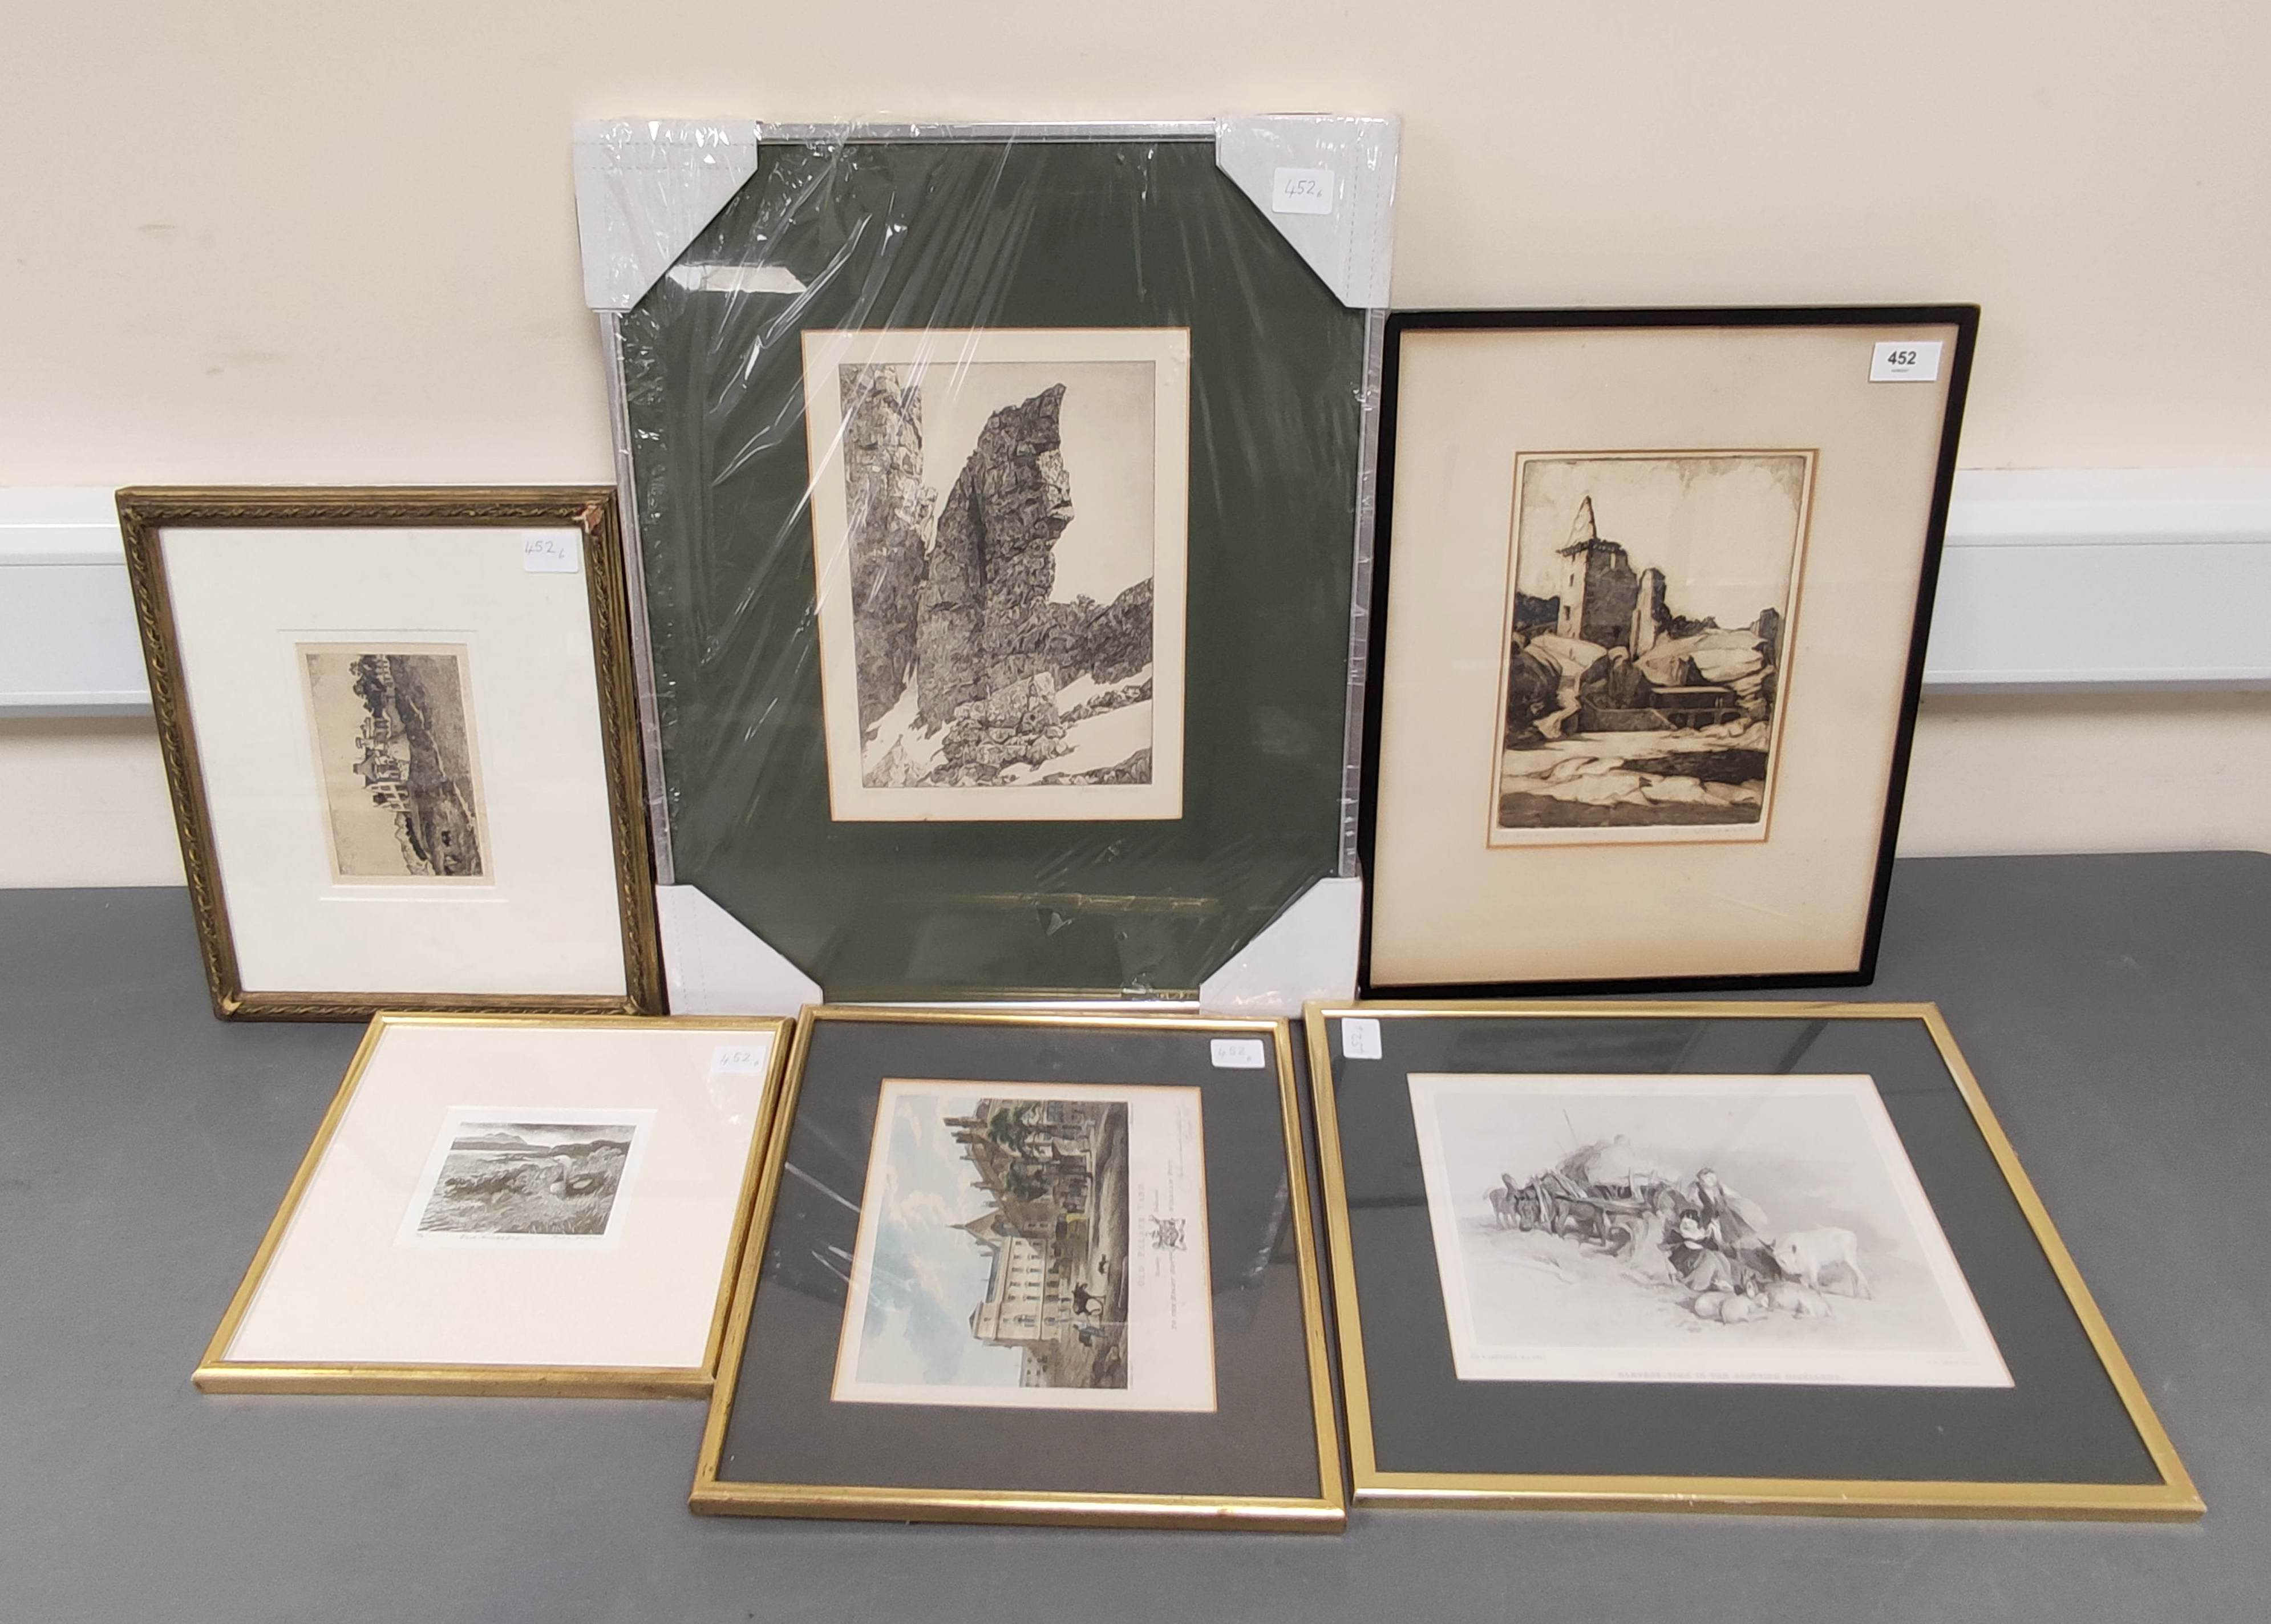 JEAN THOMAS.Bhasteir Tooth, pencil signed etching 2/60; also 5 other engravings & etchings. (6).